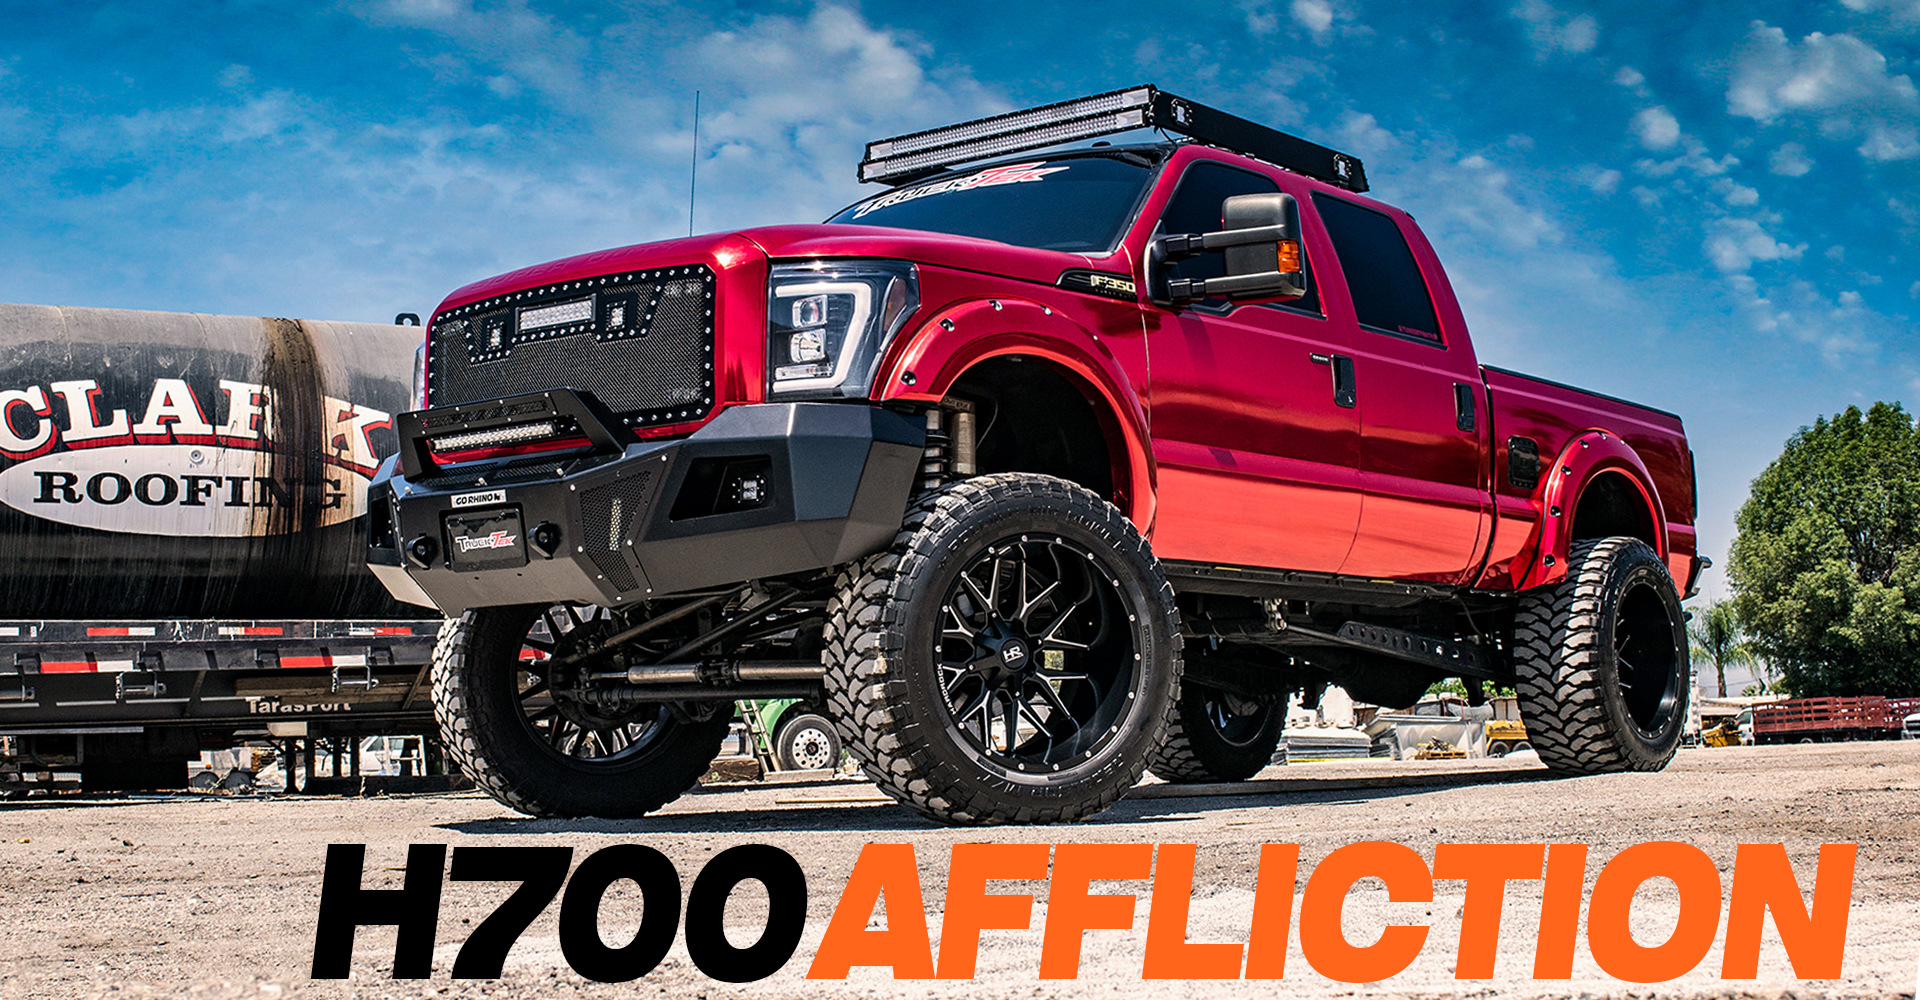 H700 Affliction Hardrock